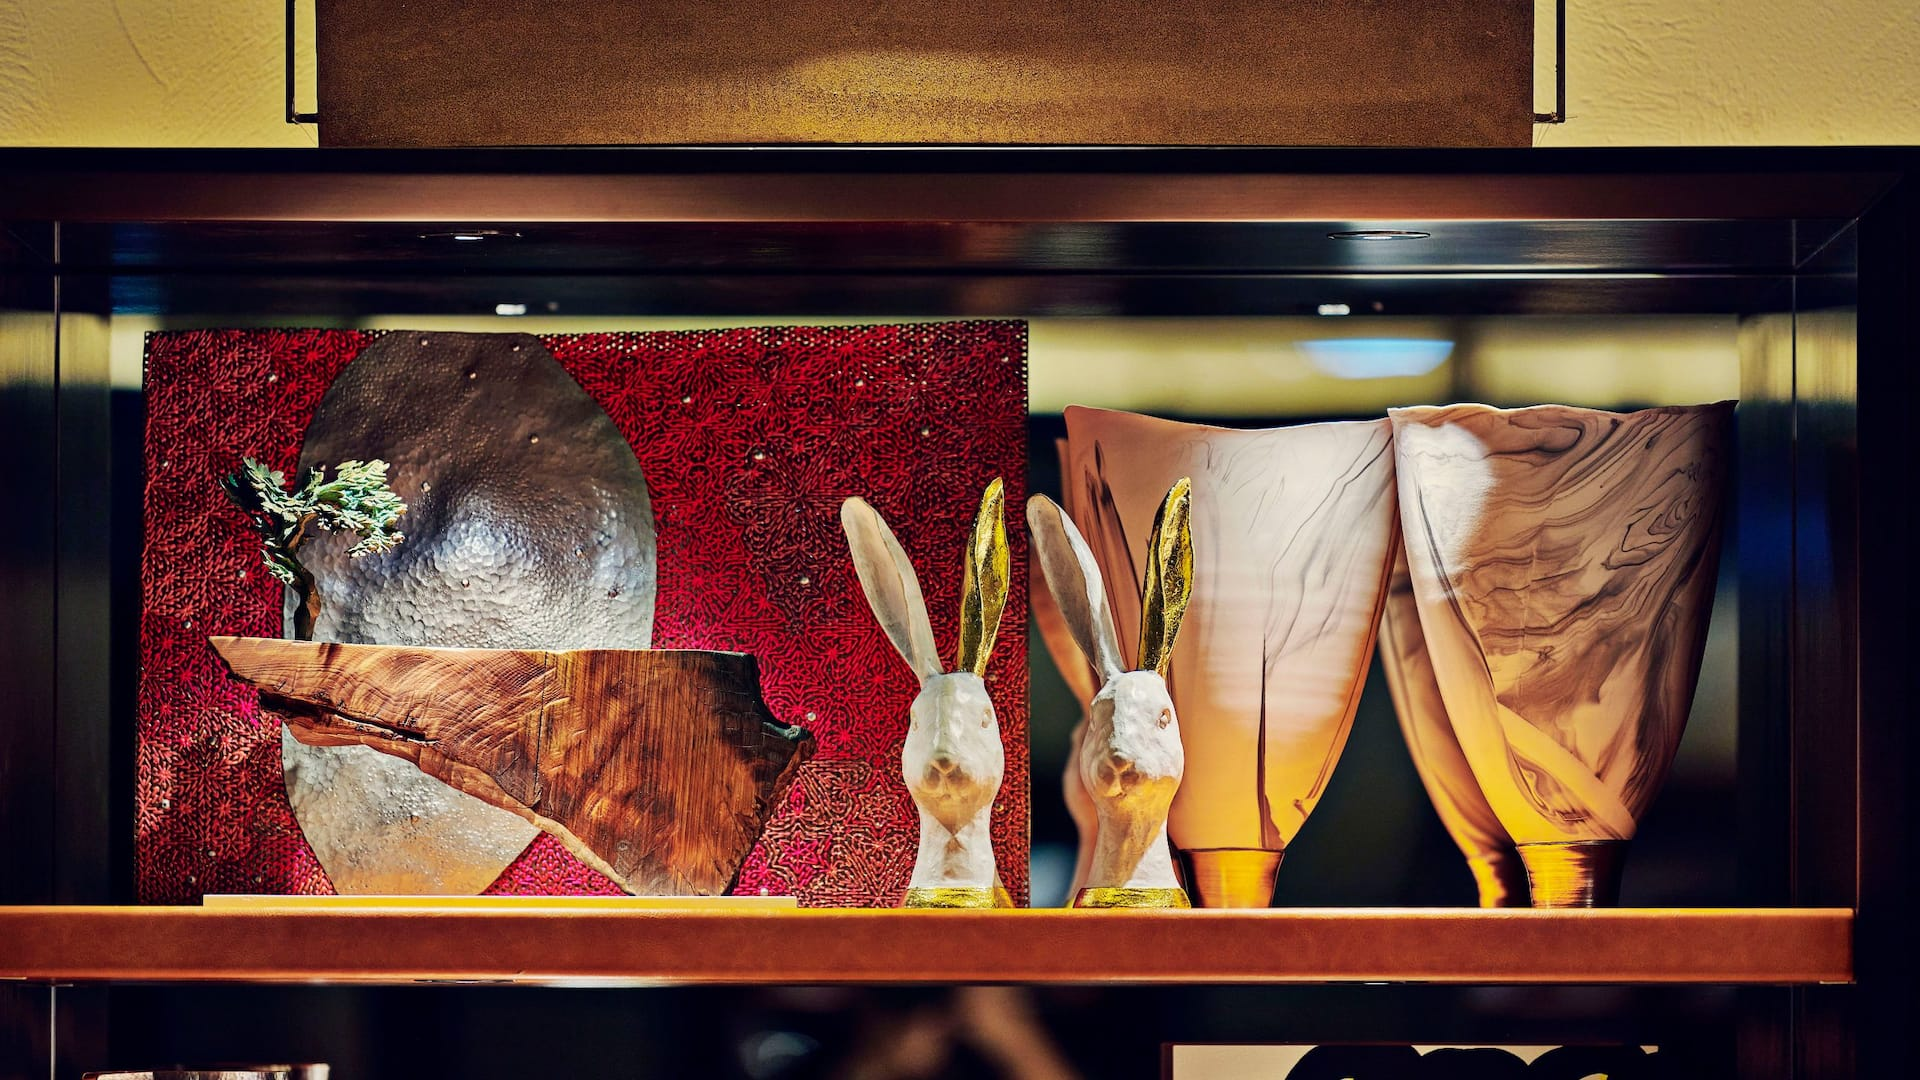 Hyatt House Kanazawa Artwork Shelf Pavilion Rabbit